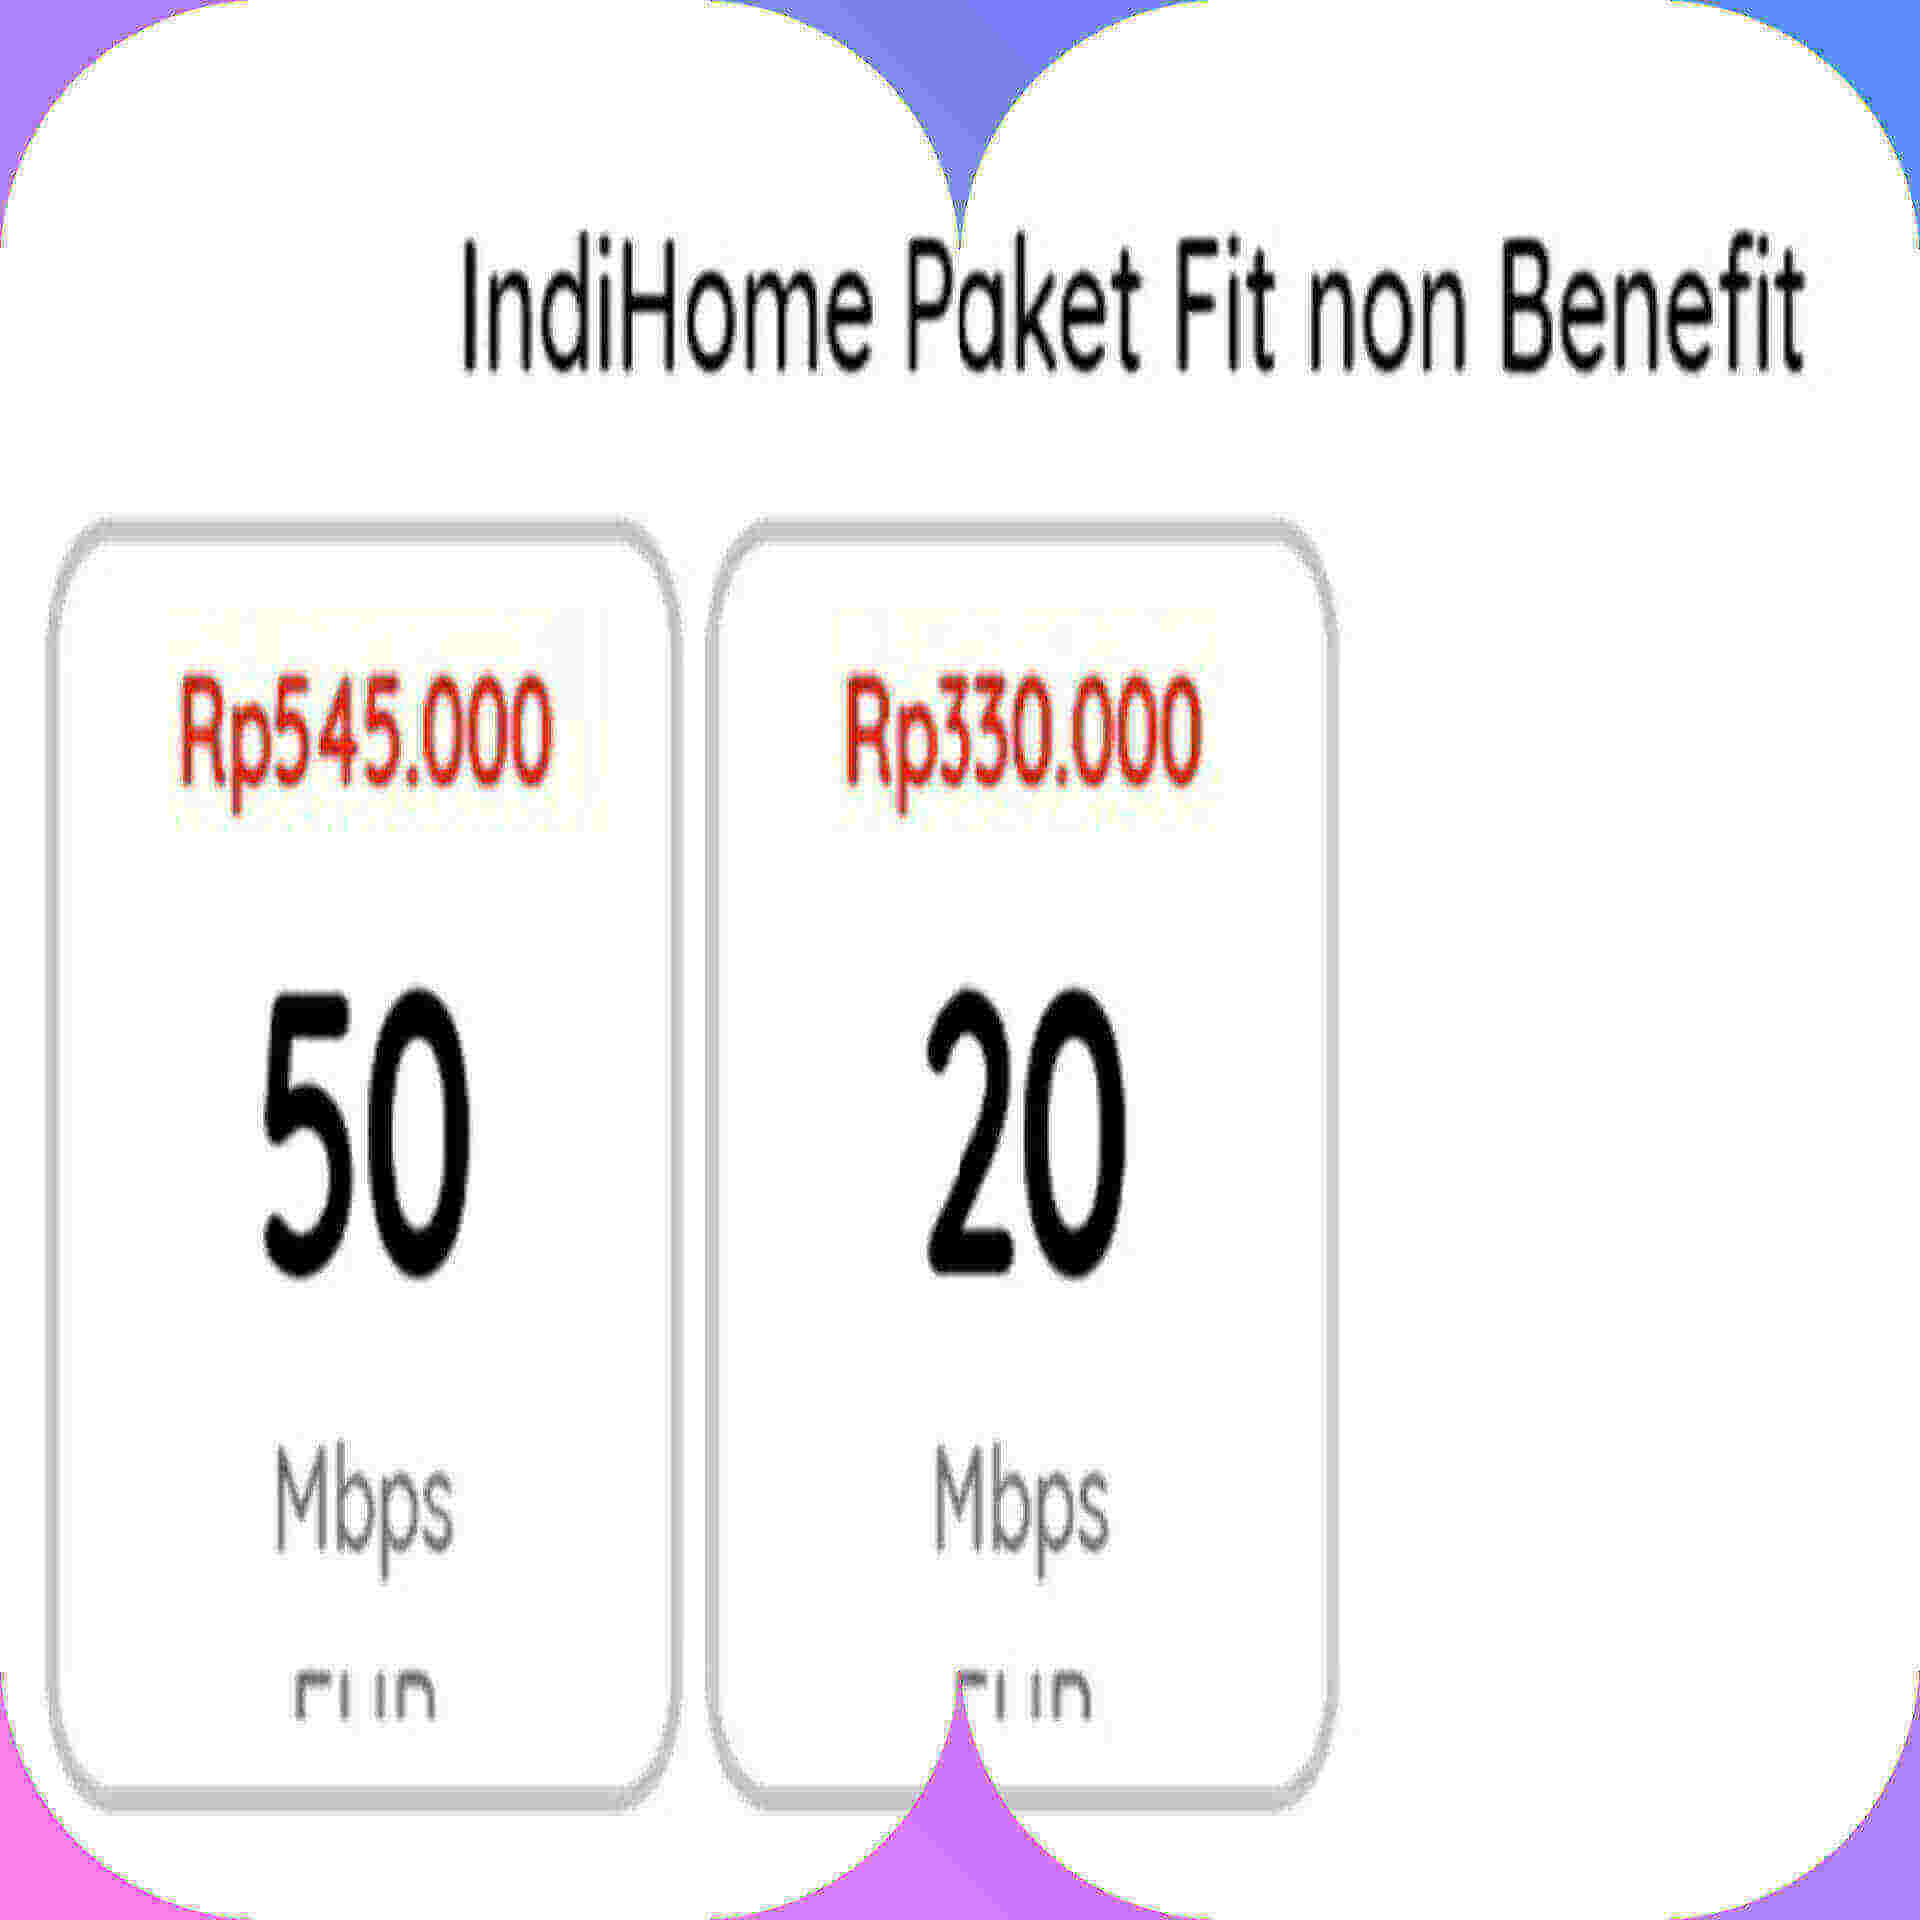 indihome fit non benefit